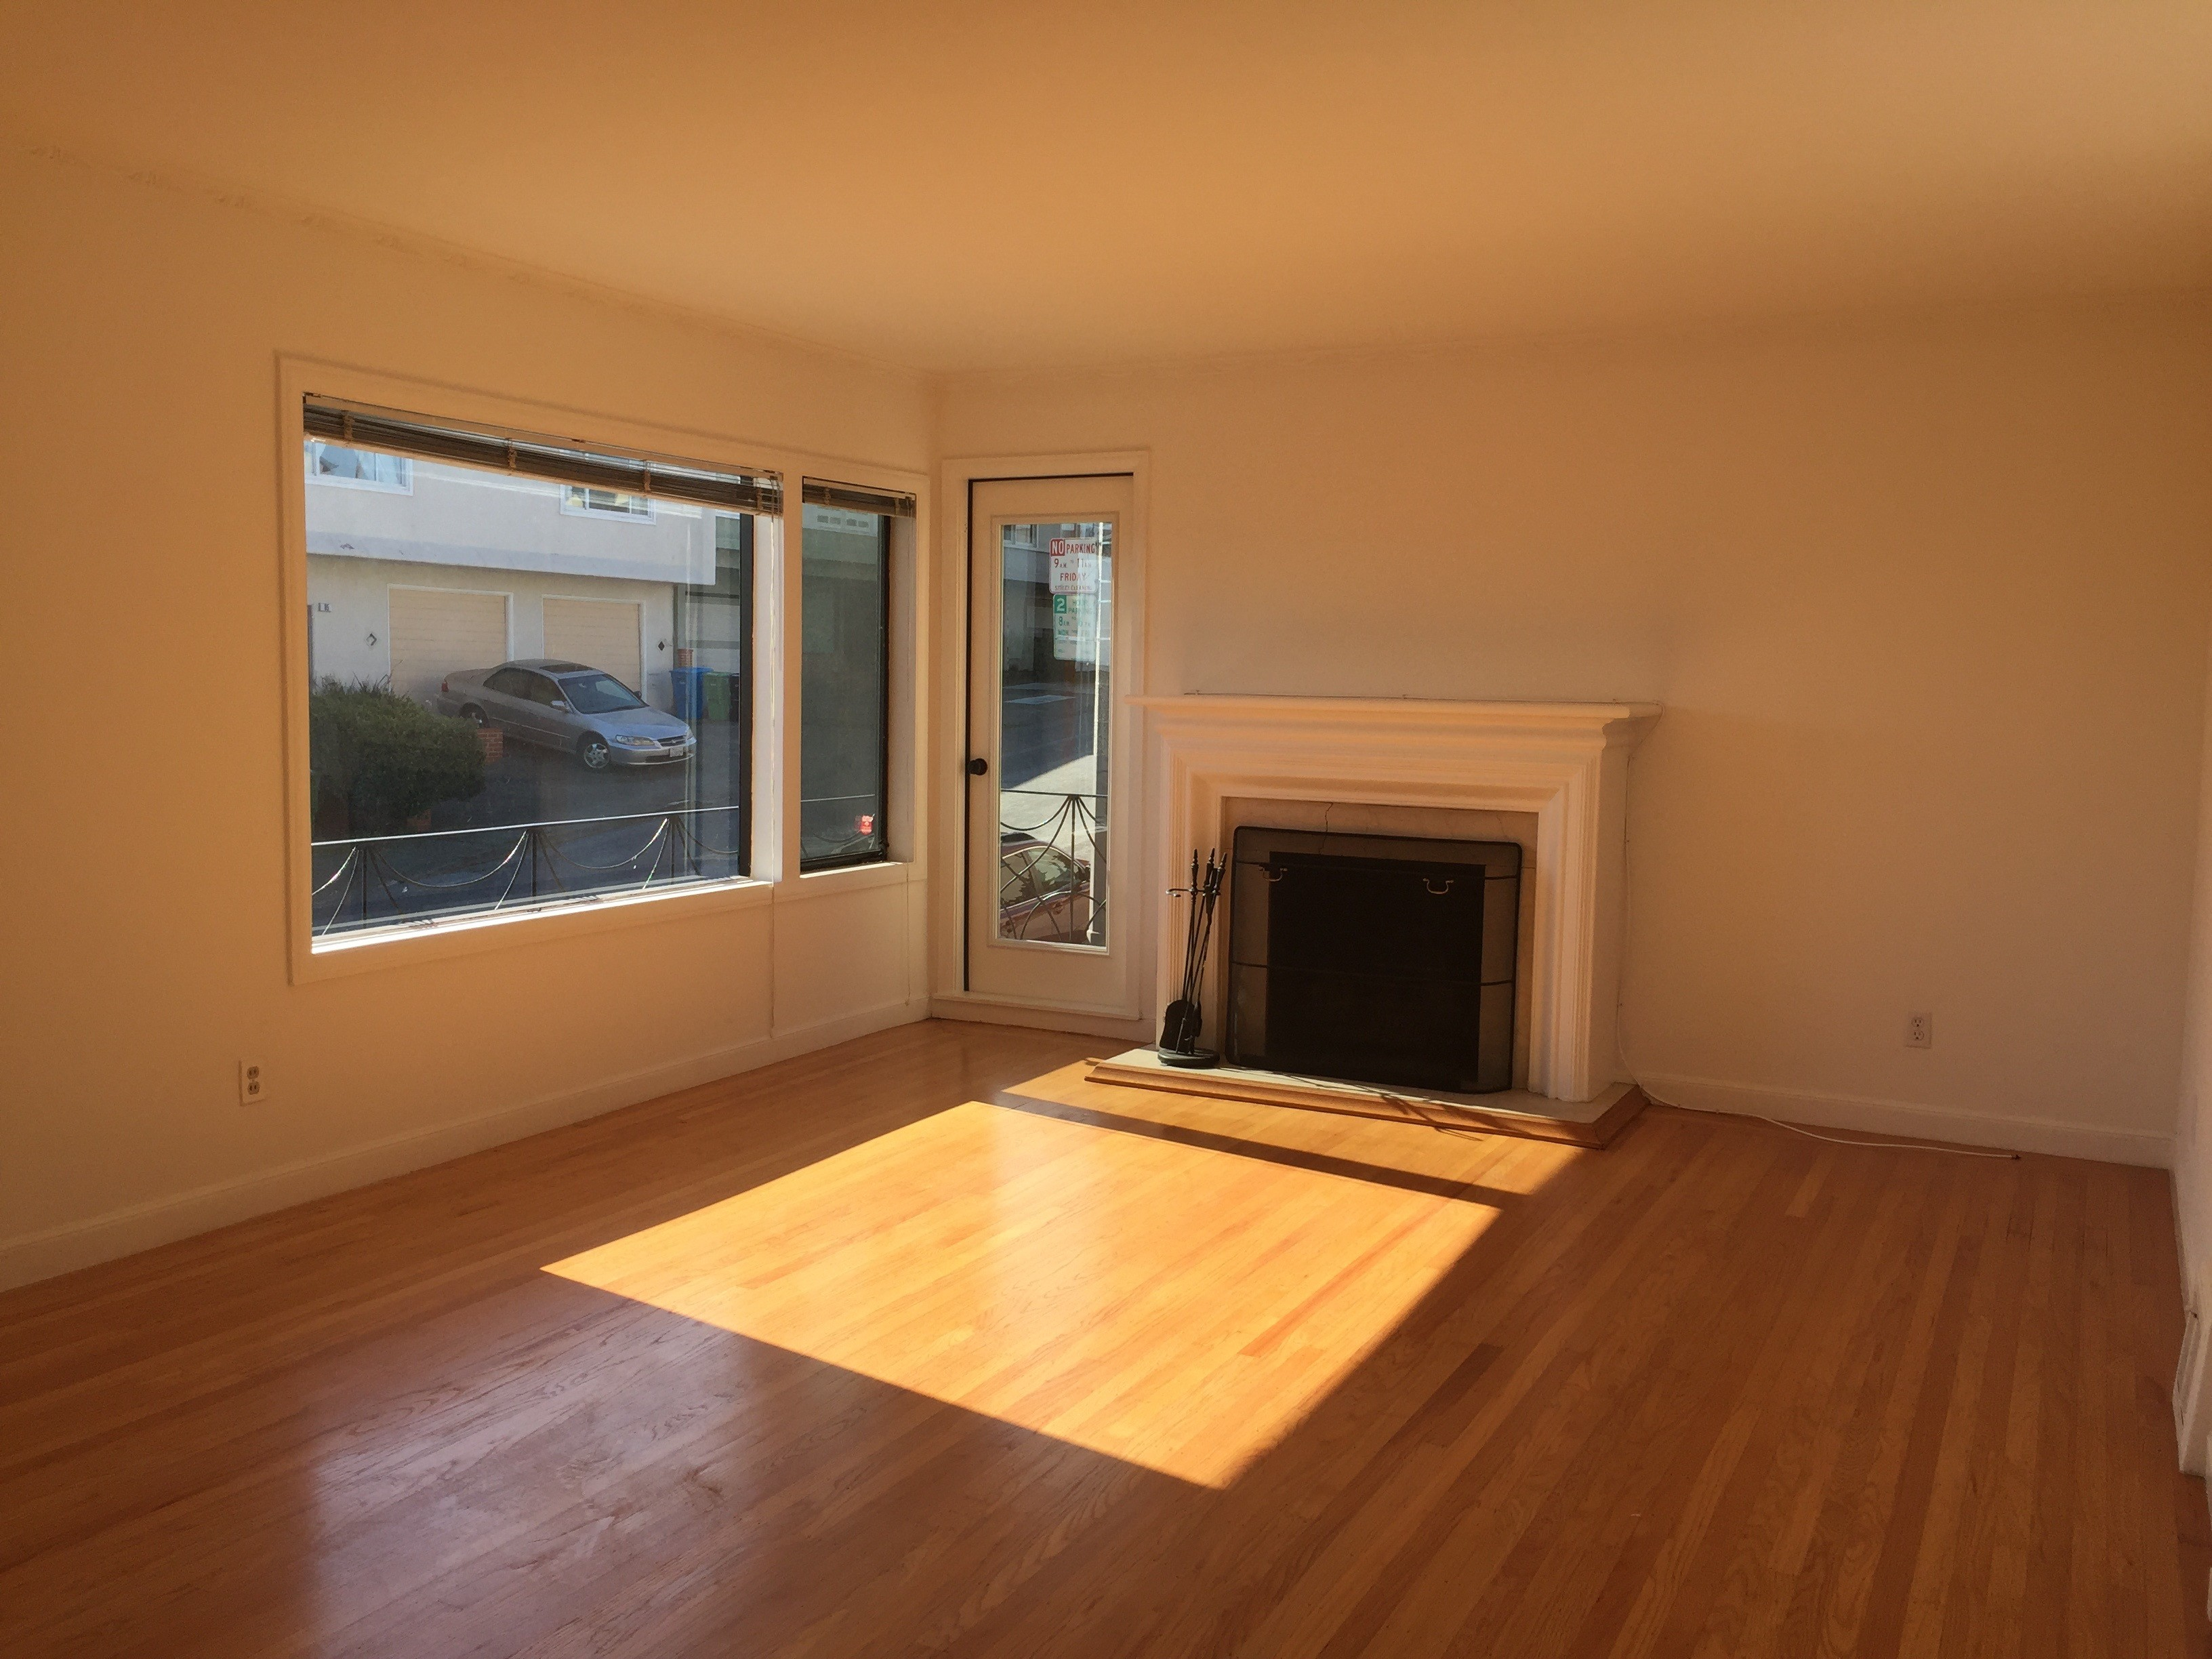 Cheap Rooms For Rent In Richmond Ca